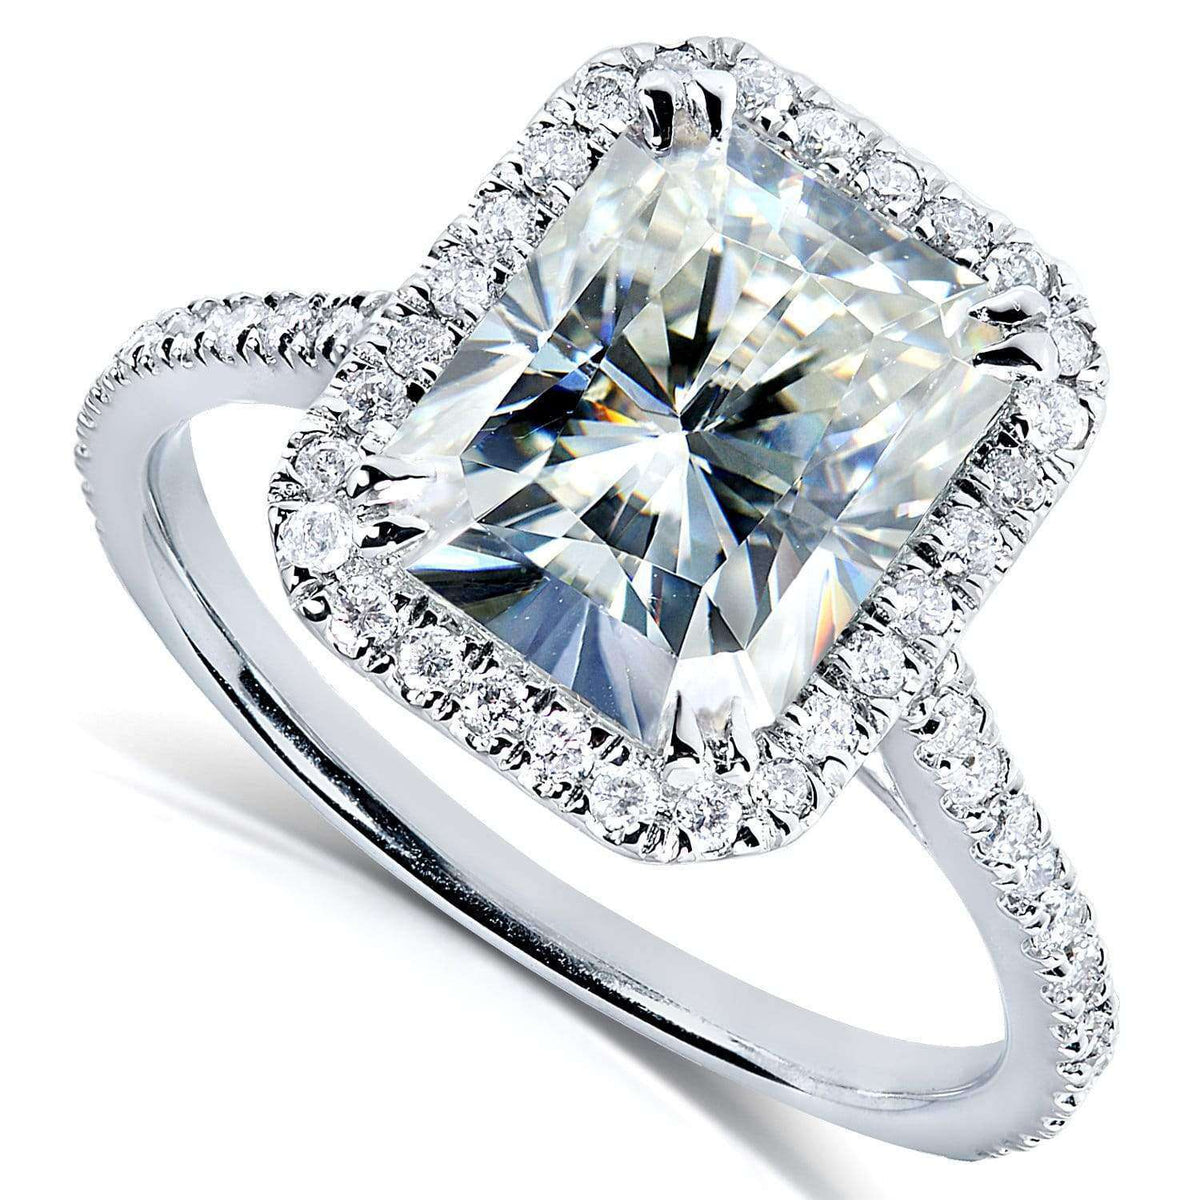 Radiant Cut Moissanite Engagement Ring With Diamond 3 Ctw